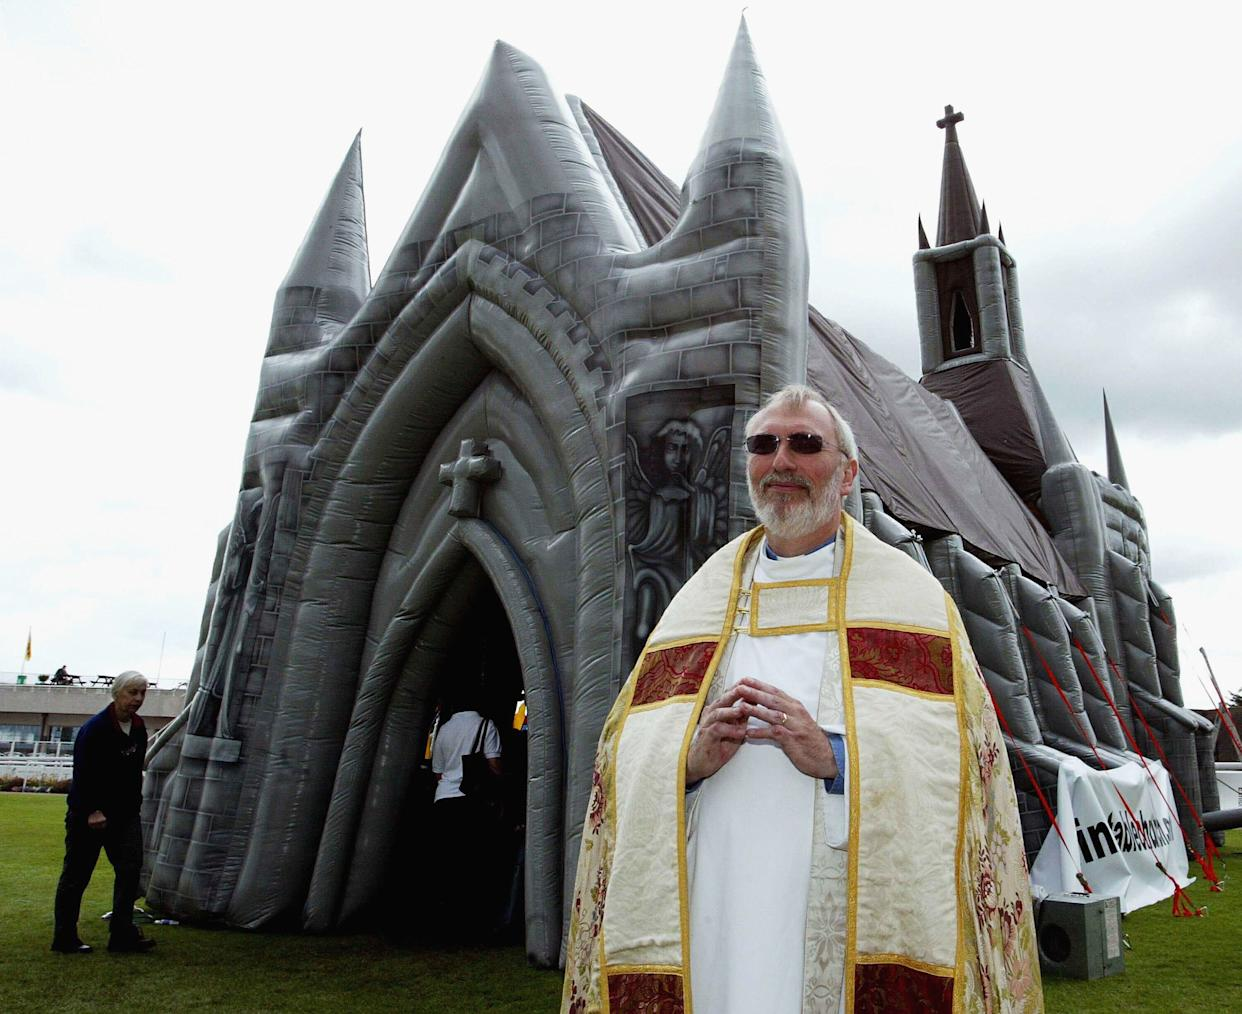 Father Michael Elfred, a church minister from Tadworth, Surrey, stands outside the world's first inflatable church, erected on May 13, 2003, in Sandown, England. The church stands 47 feet tall from floor to steeple, comes complete with inflatable organ, candles and stained glass windows, and can hold up to 60 people.